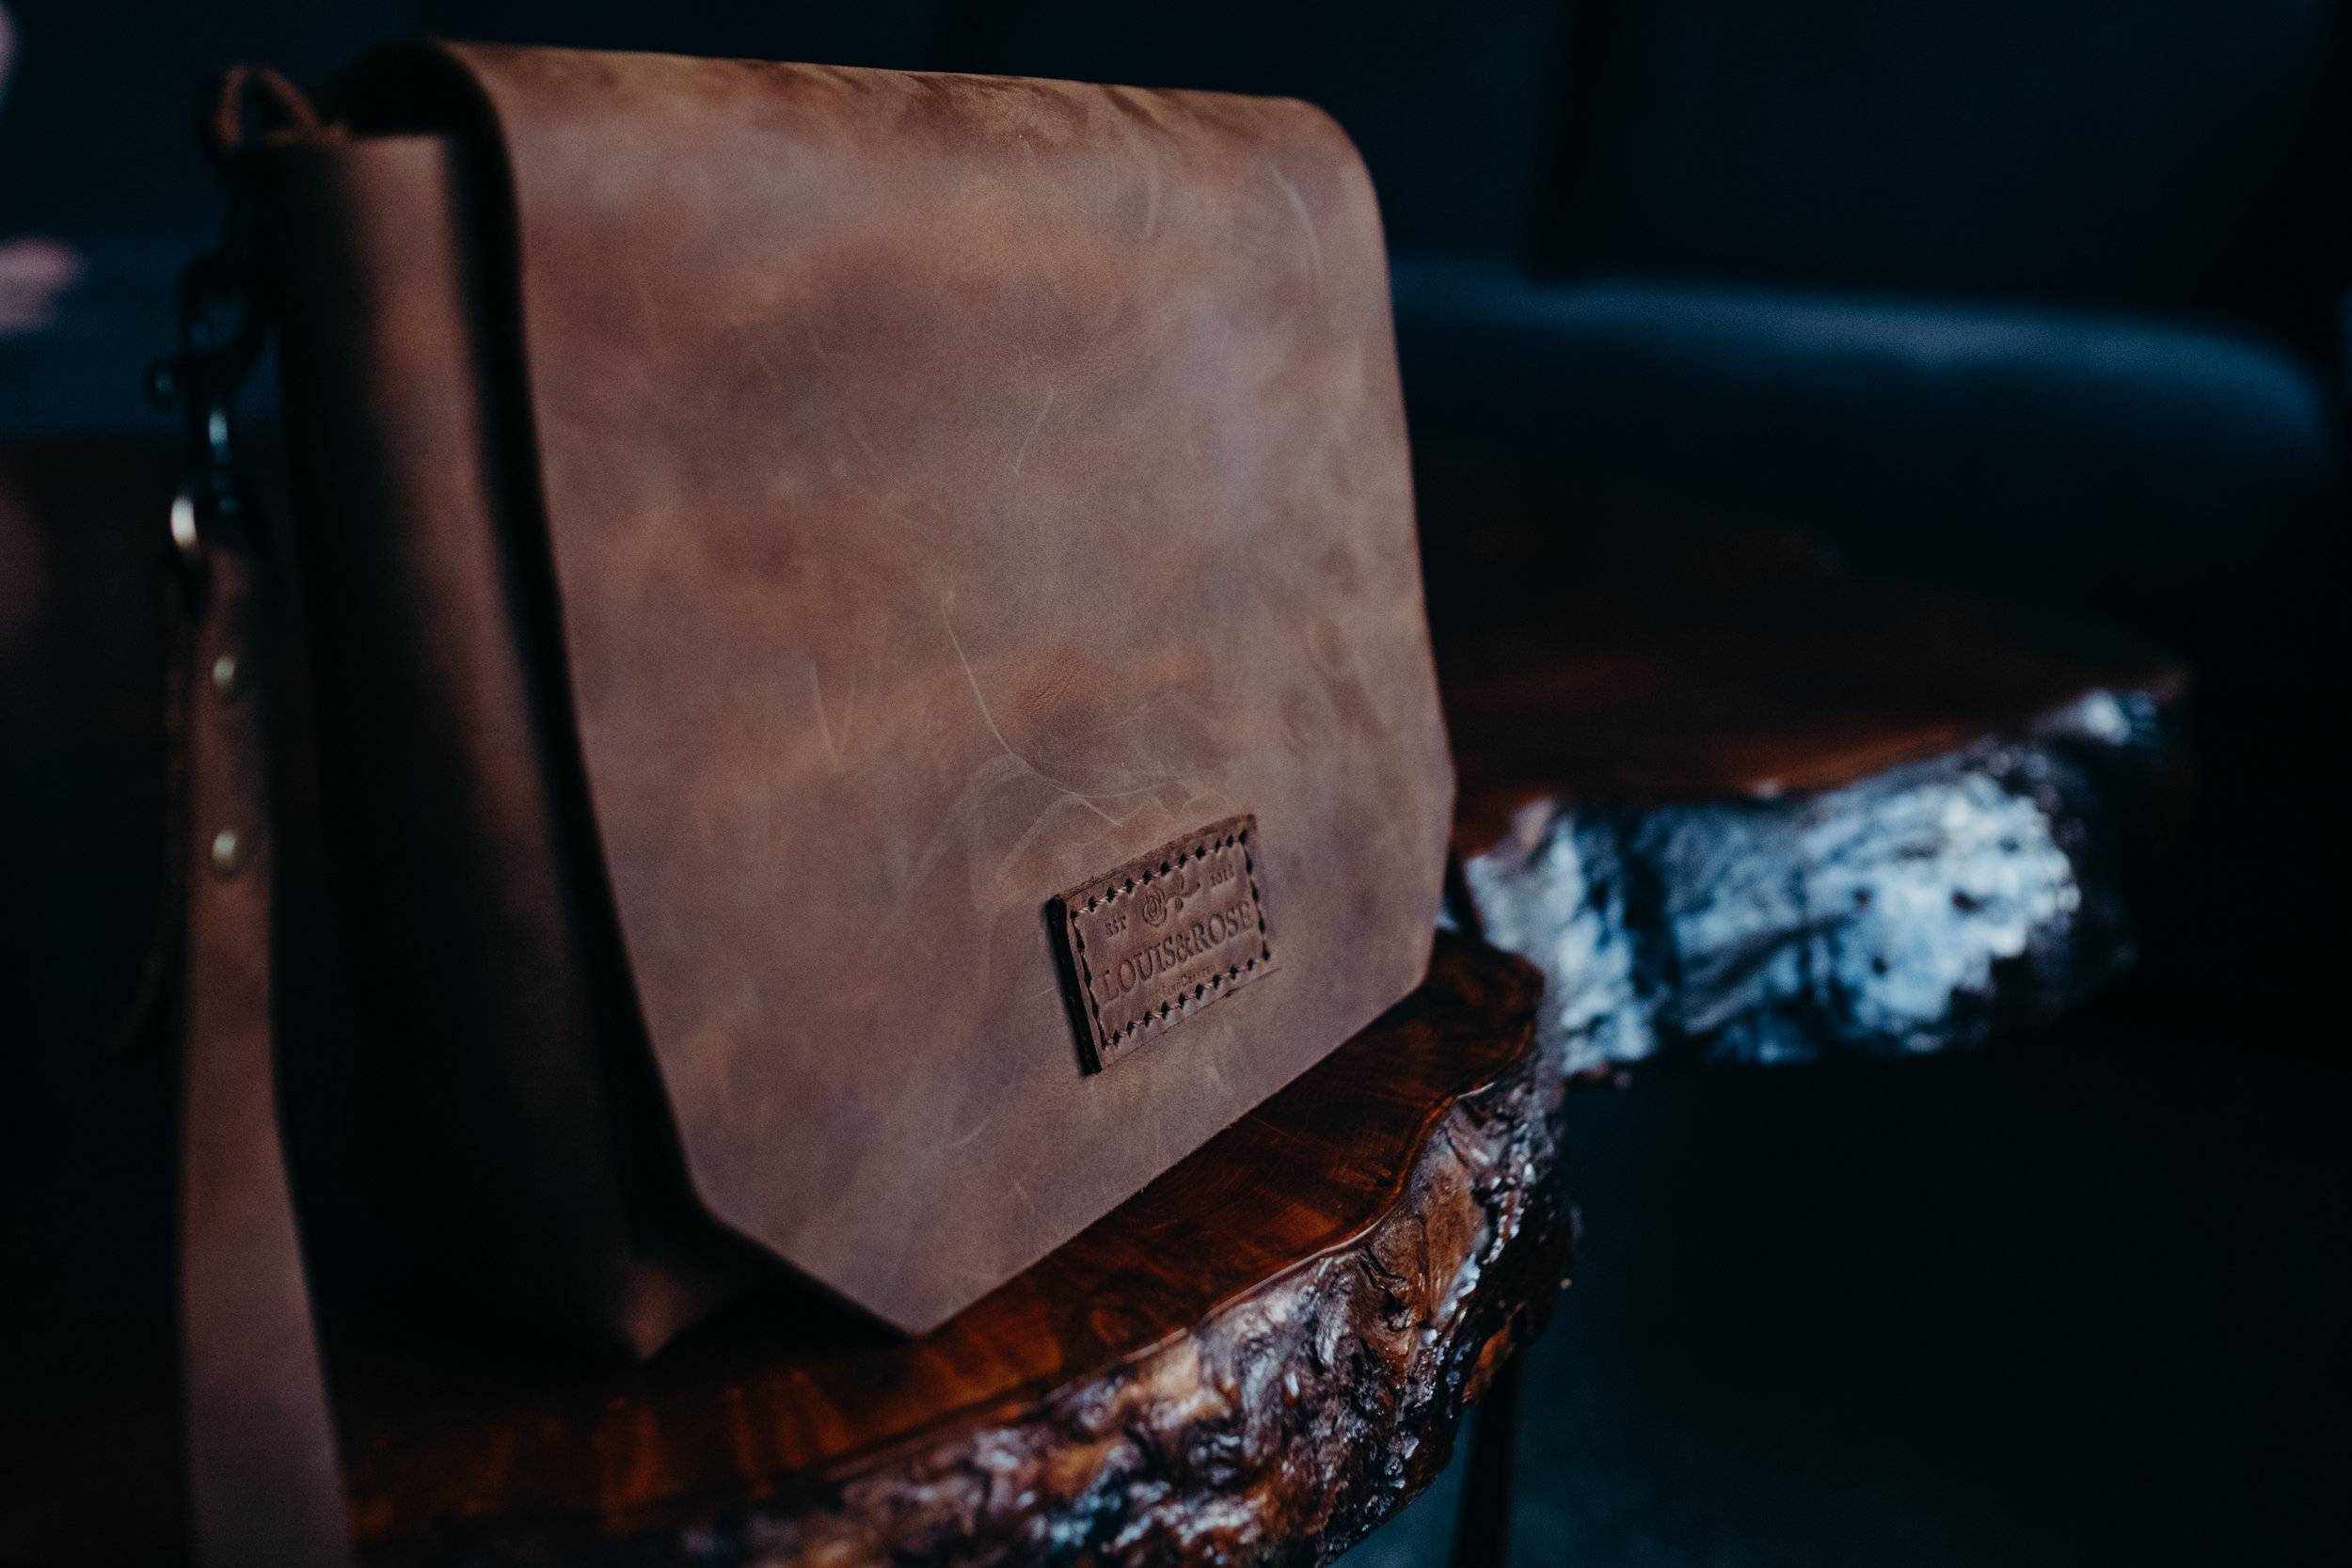 Louis and Rose Leather - Product & Brand